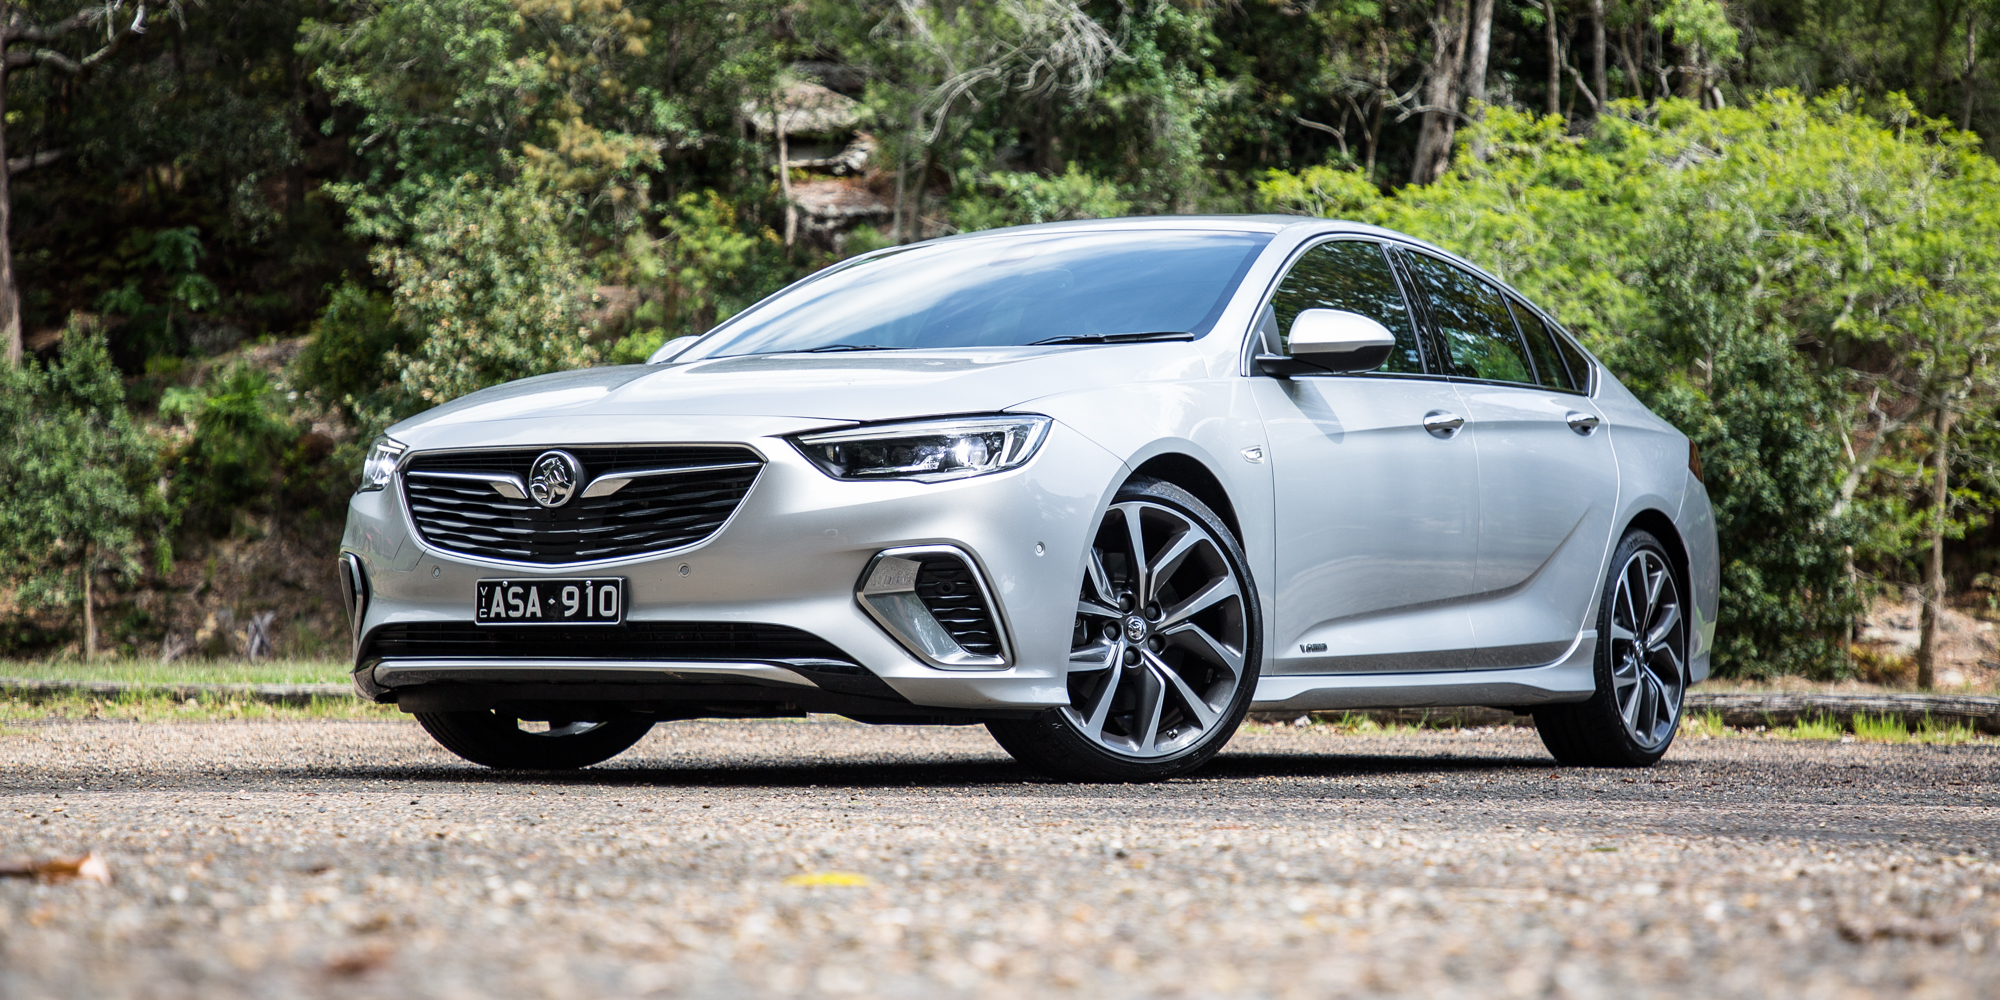 2018 Holden Commodore VXR review | CarAdvice